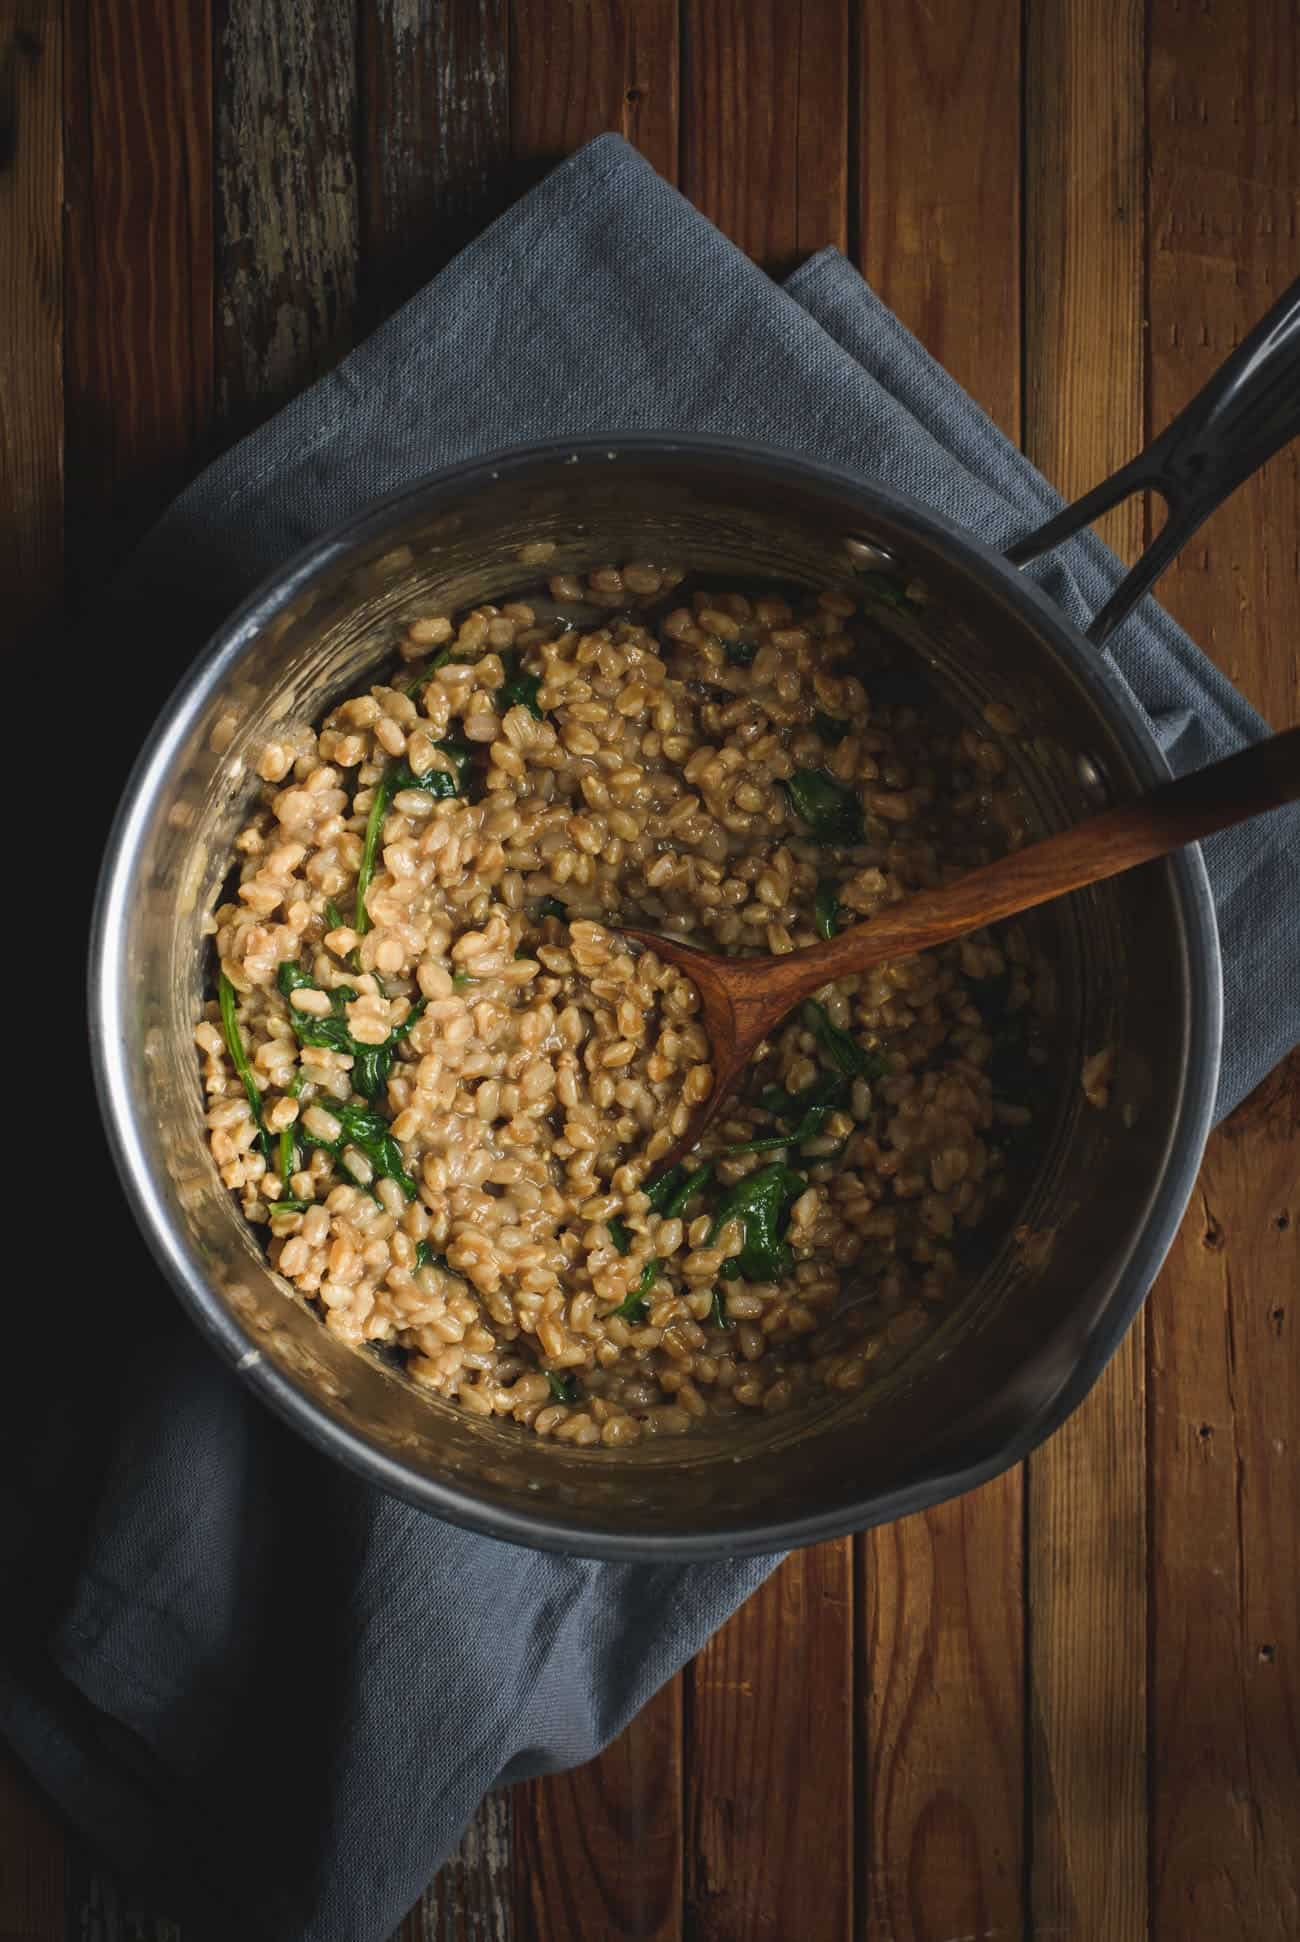 Pot of savory farro porridge with a wooden spoon